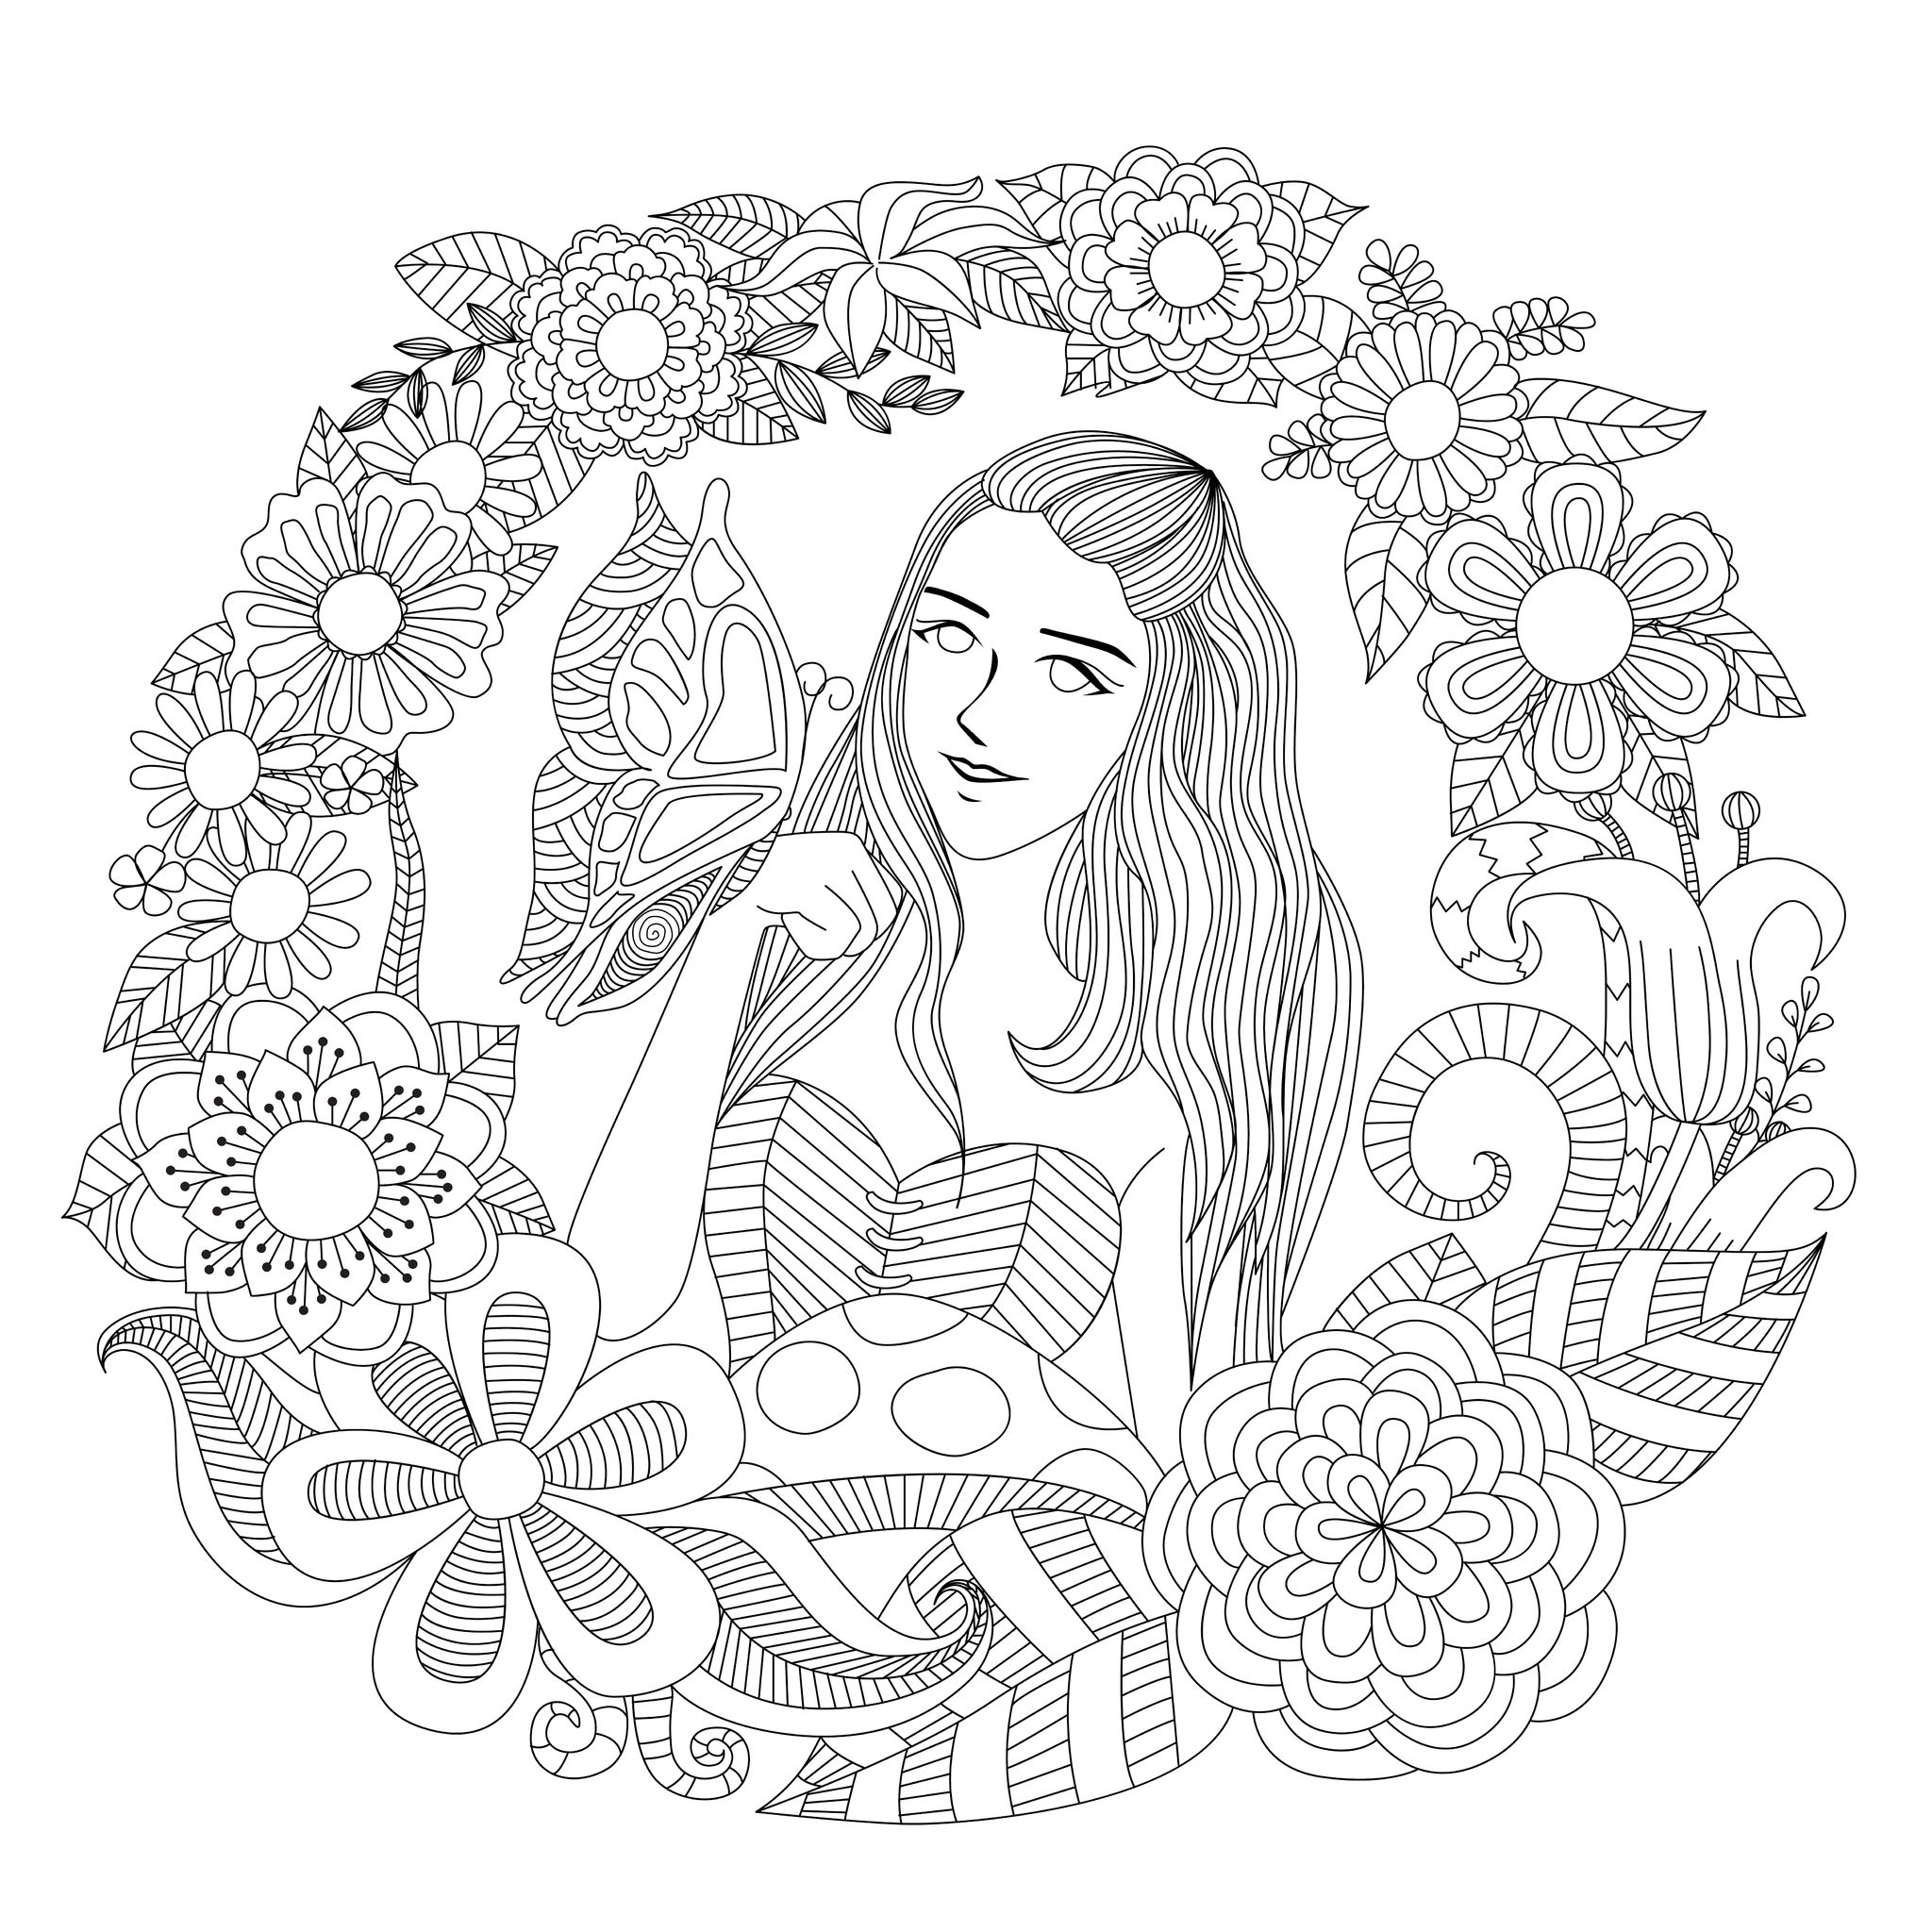 two women coloring page for adults la fille au papillon par bimdeedee anti stress amp 7923